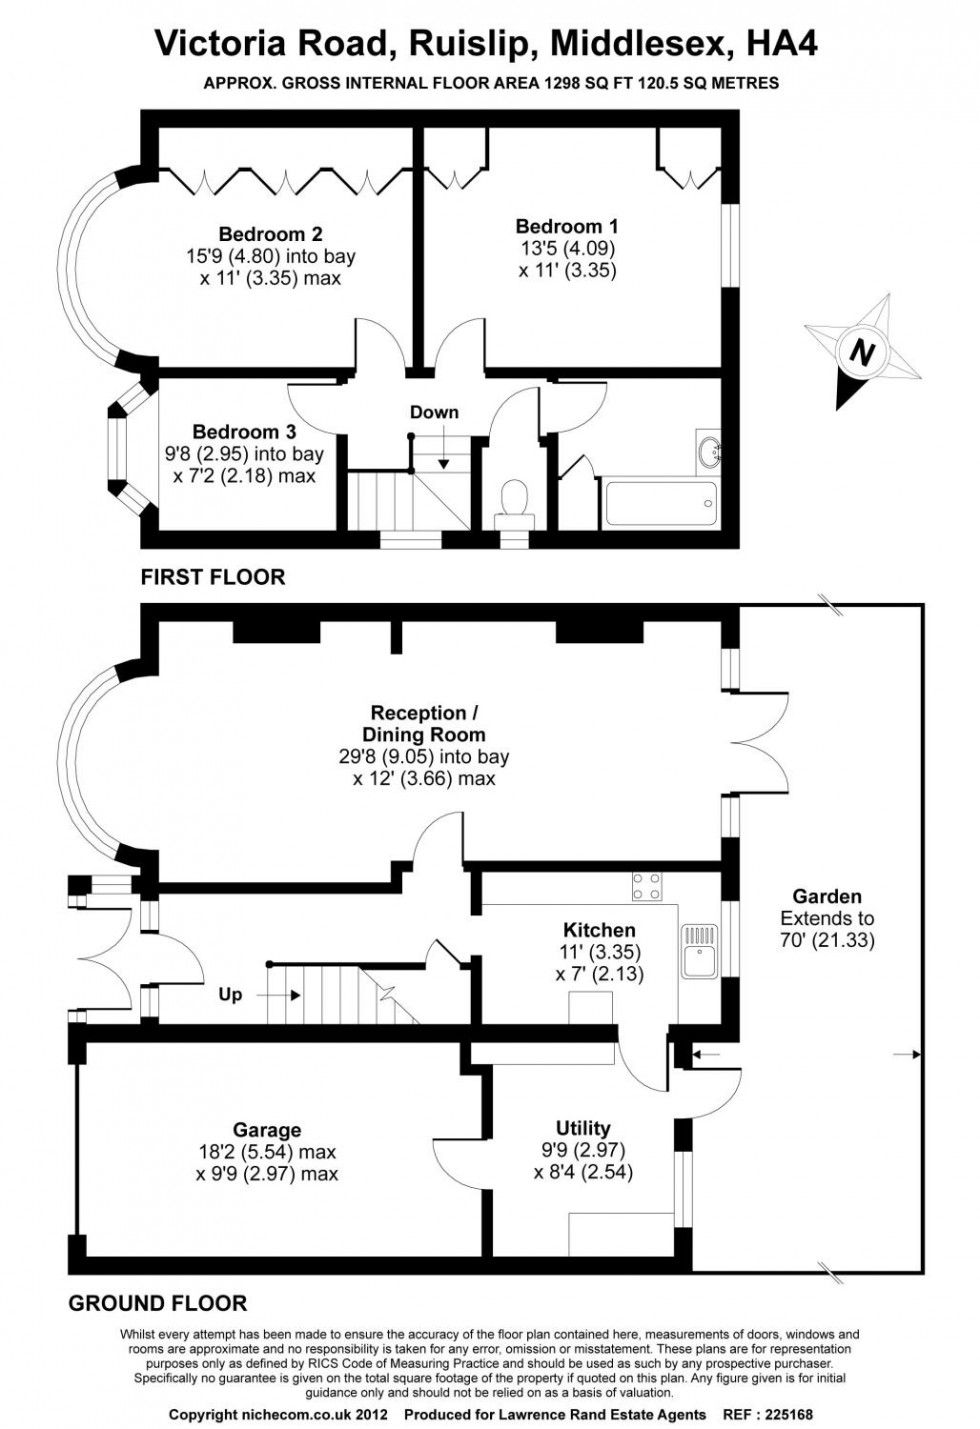 Floorplan for Victoria Road, Ruislip, Middlesex, HA4